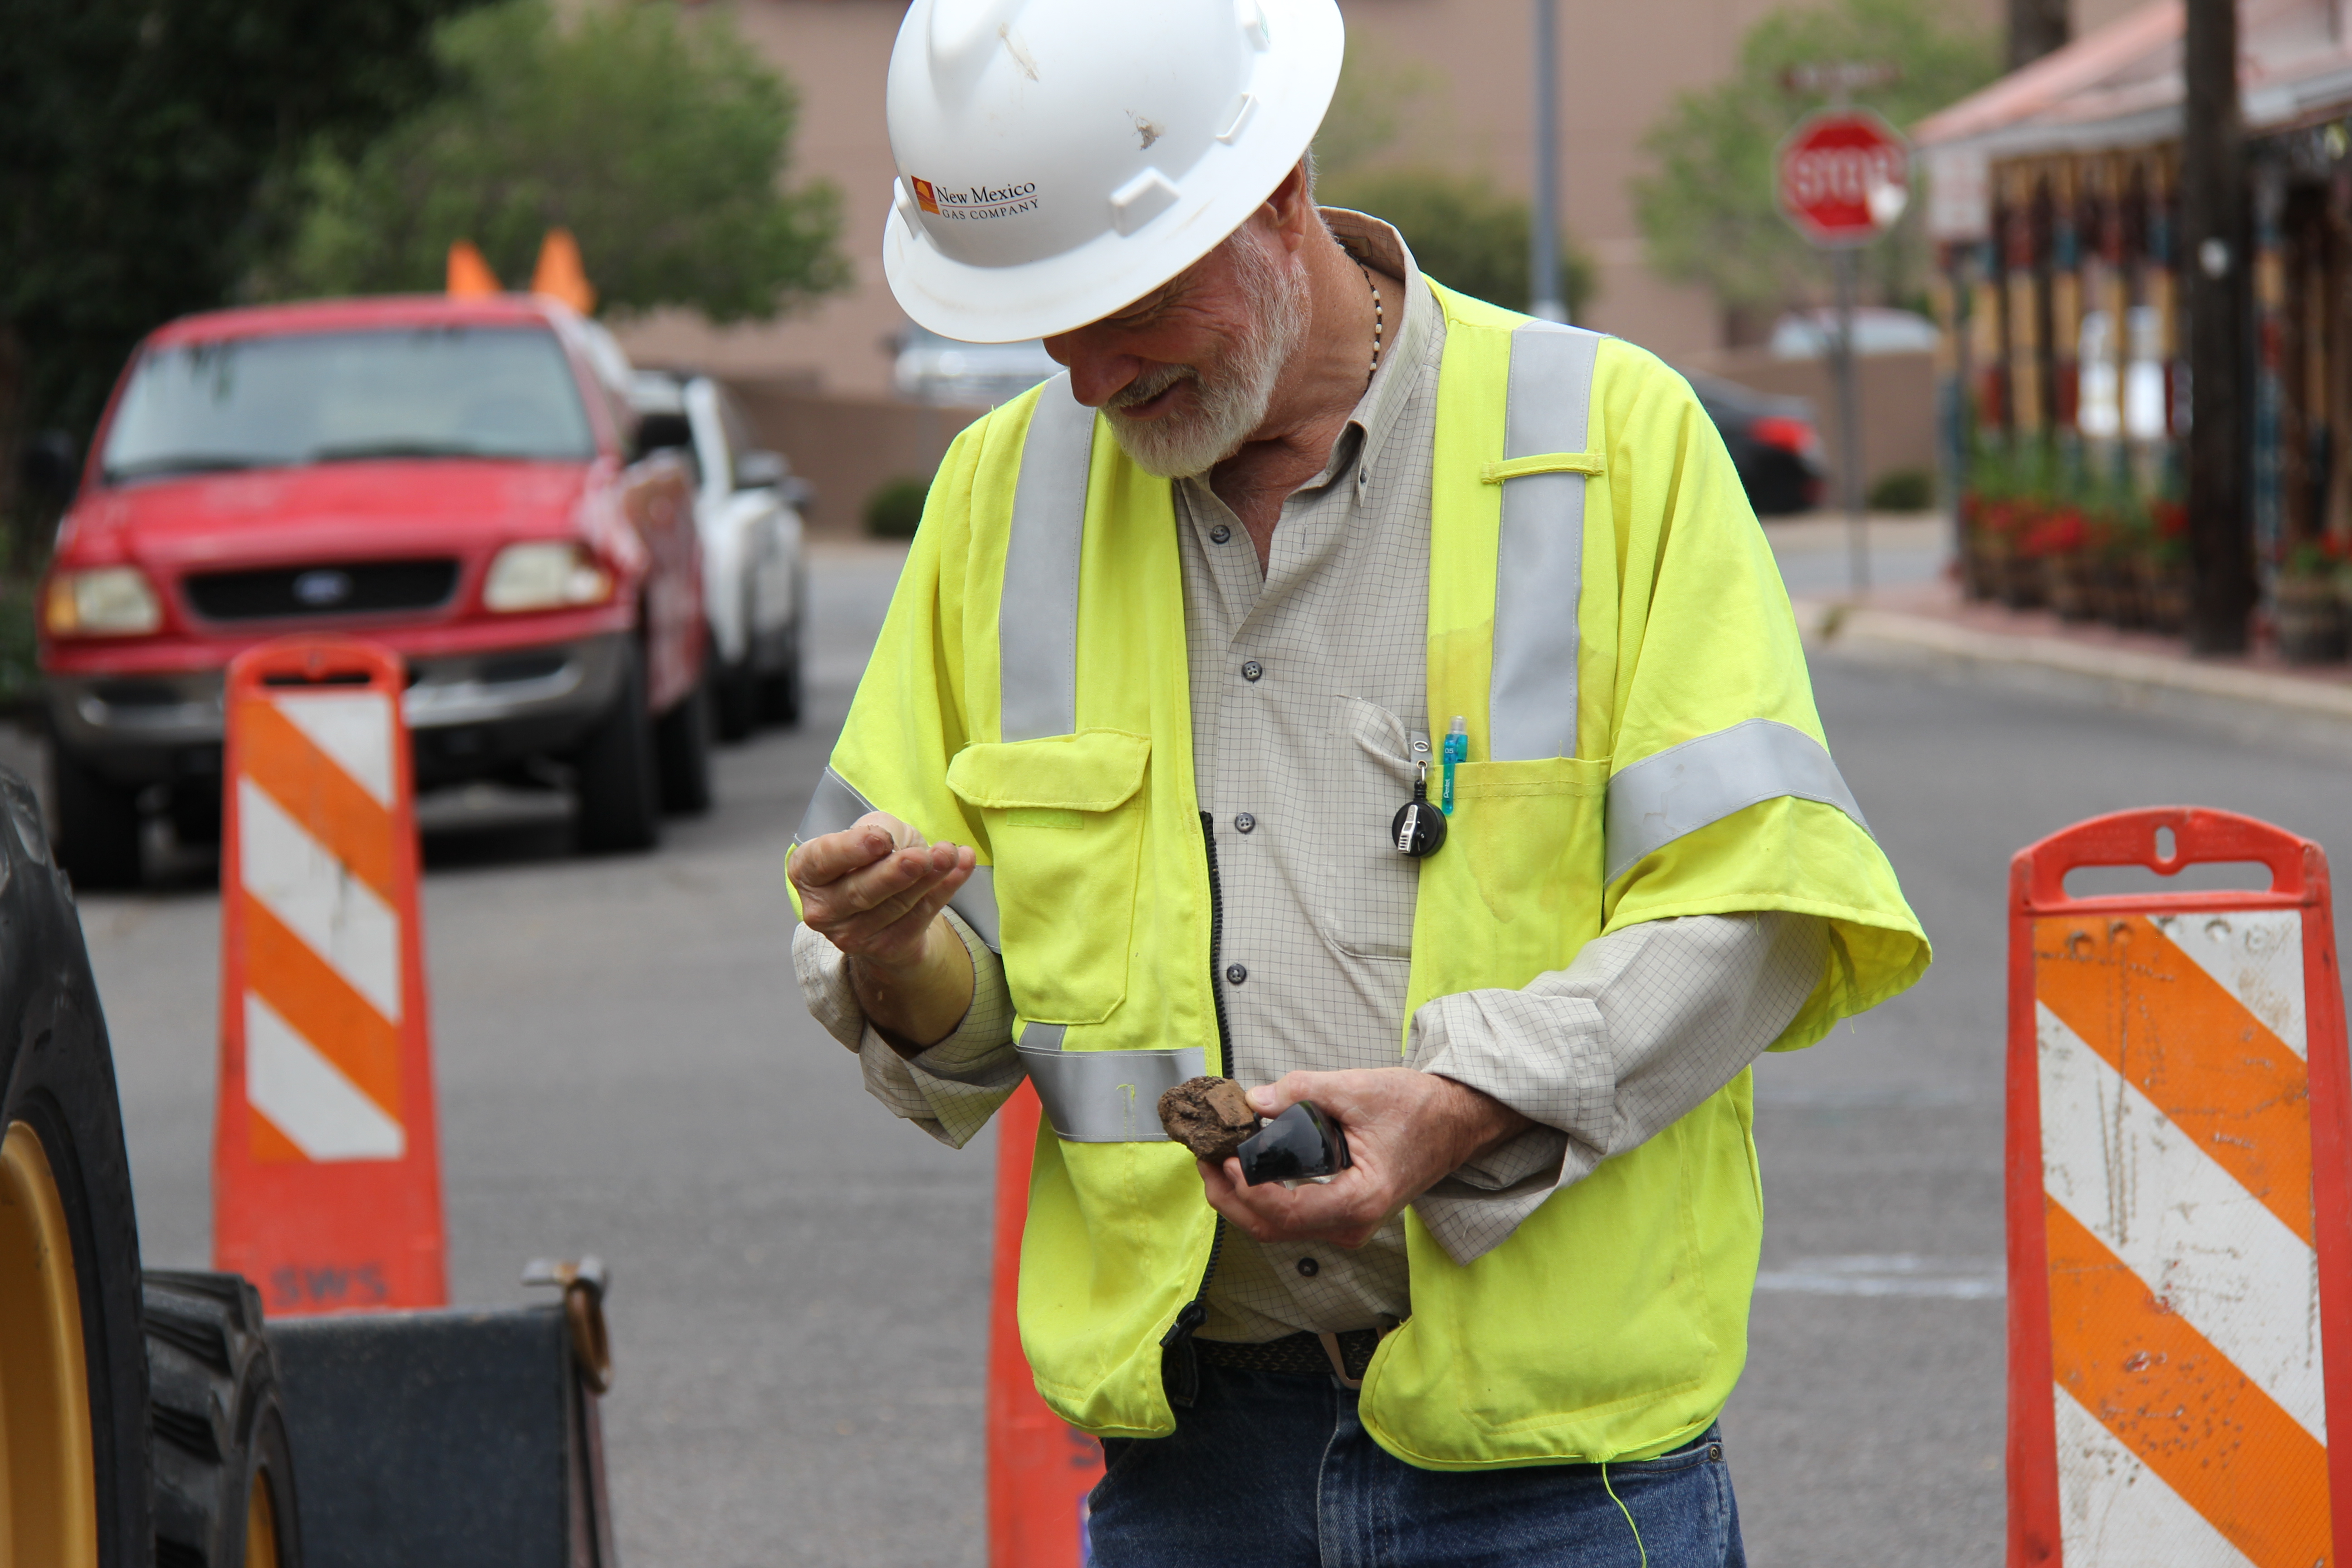 NMGC's environmentalist examines pottery found at a worksite.